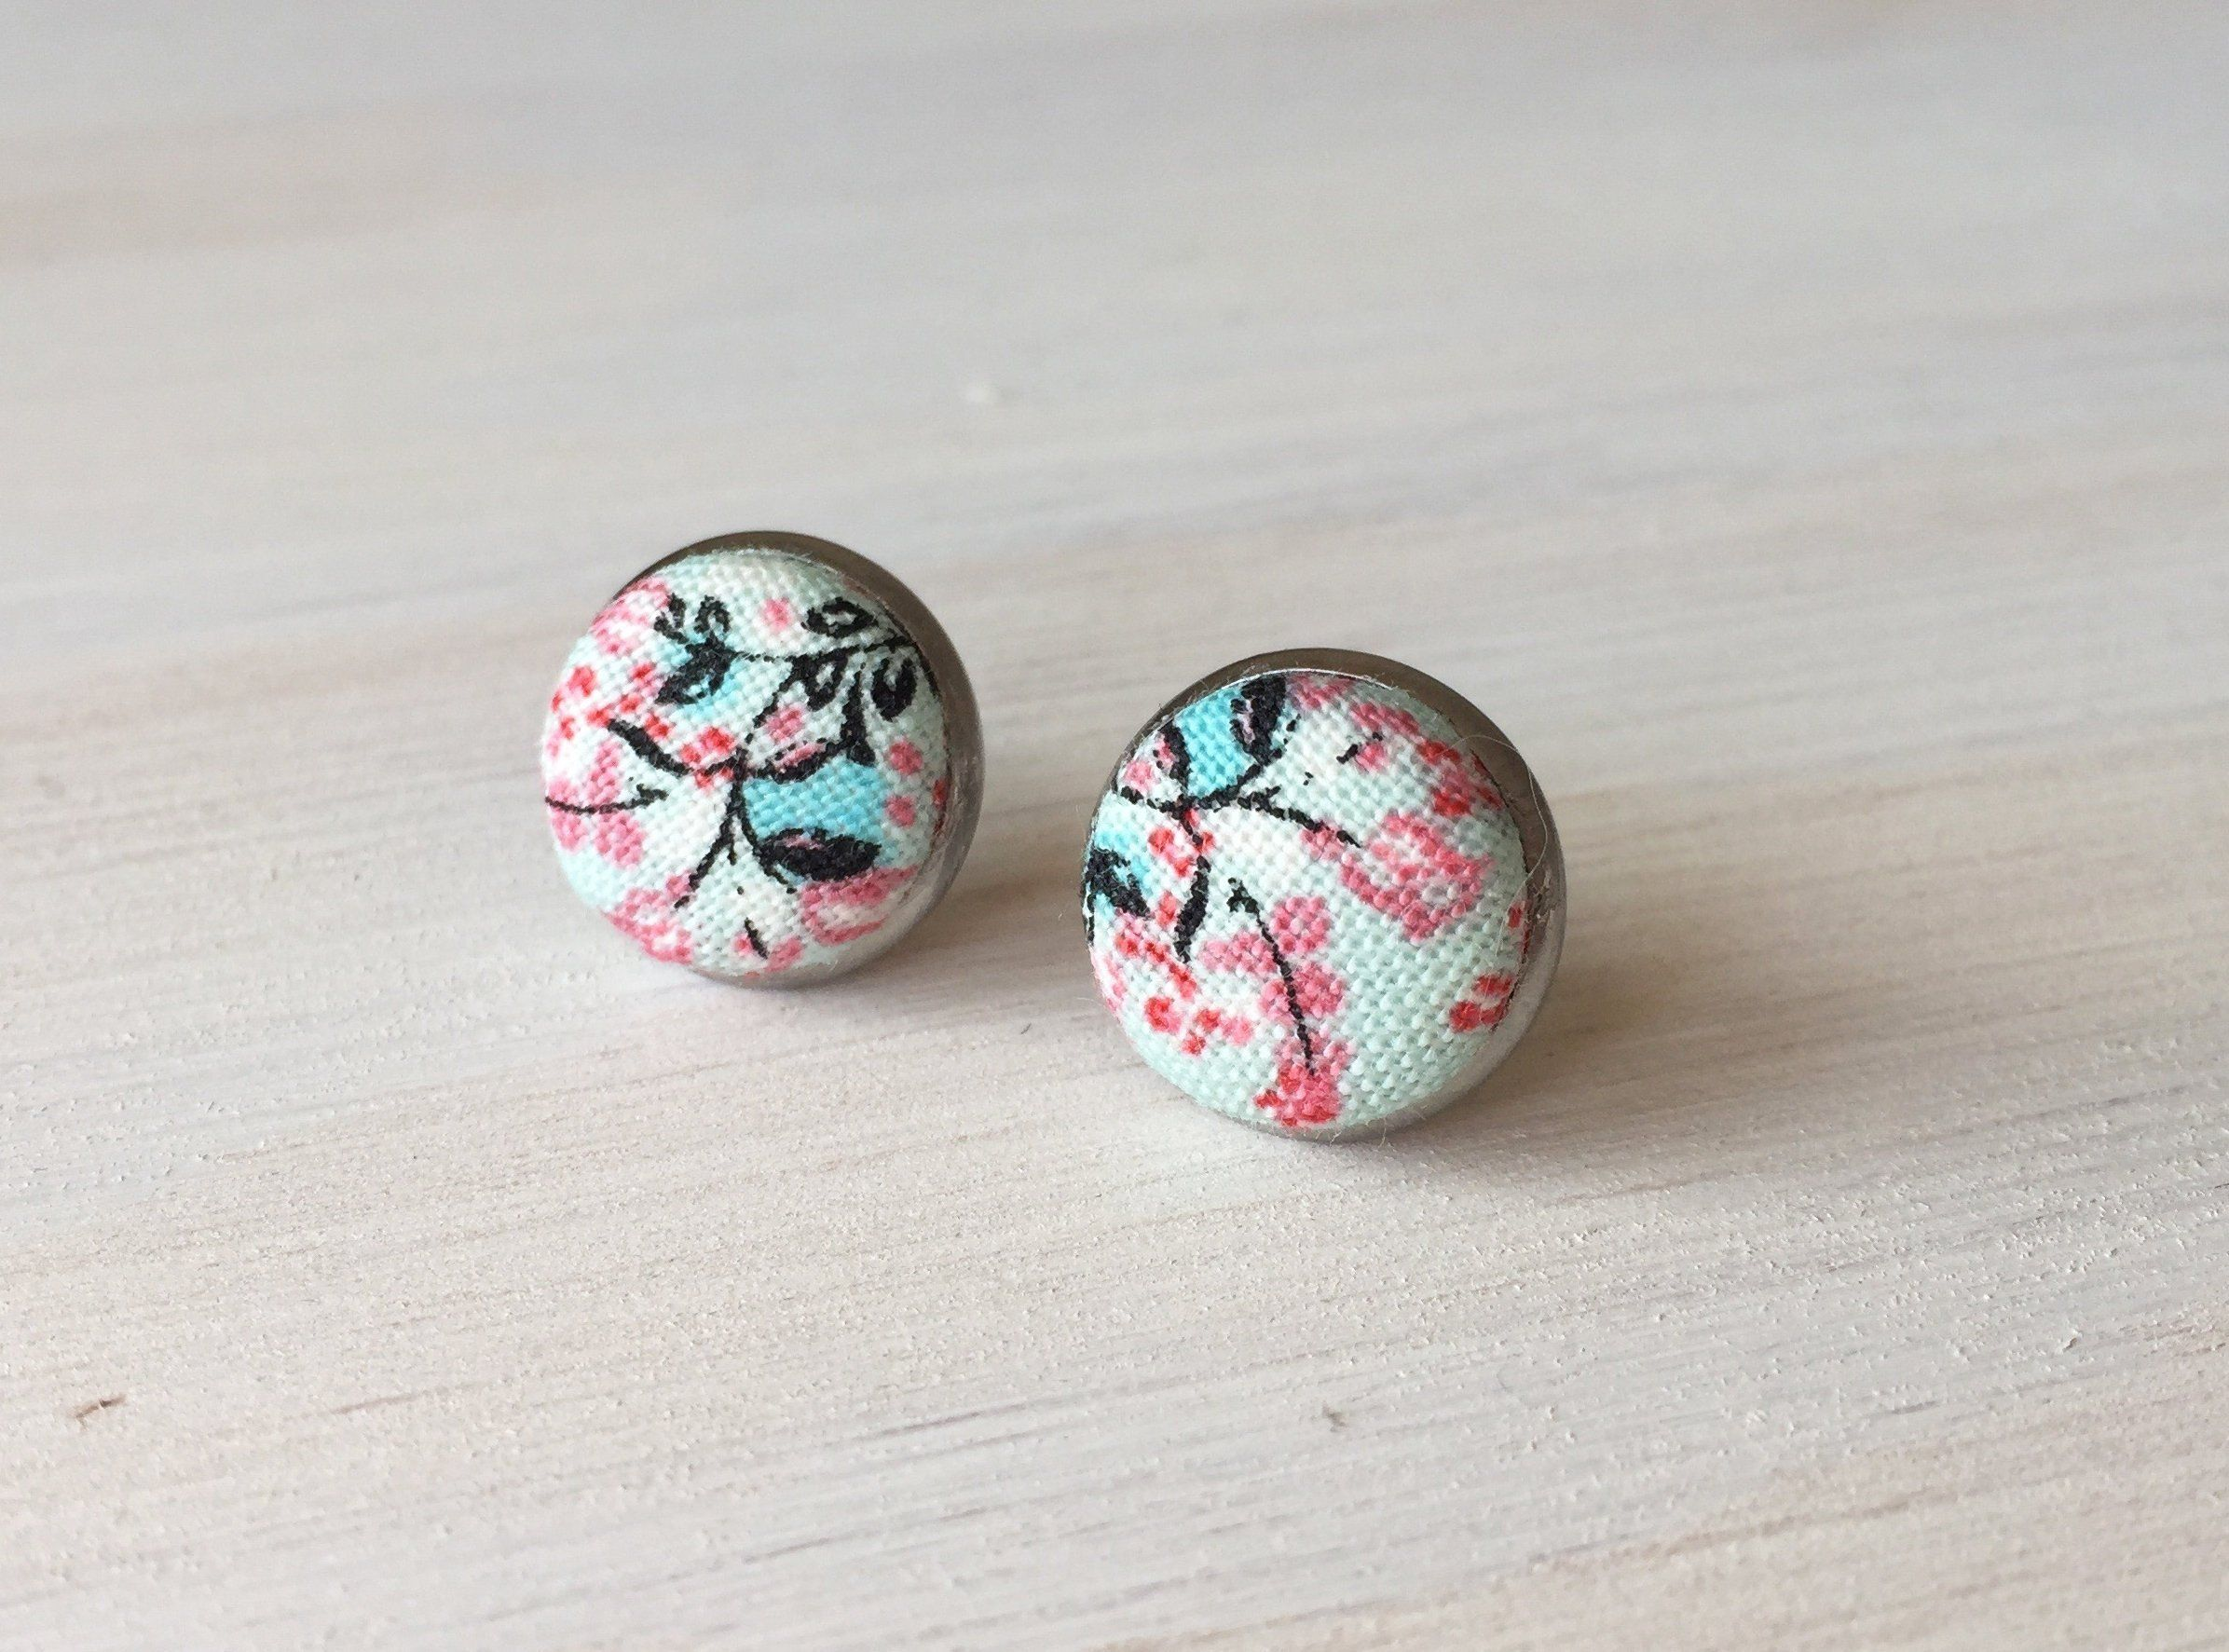 Teal Bright Pink Surgical Stainless Steel Vintage Modern Vibe White Blue Handmade in Canada Womens Earrings Floral Fabric Stud Earrings Hypoallergenic Button Cover Studs Gift for Her